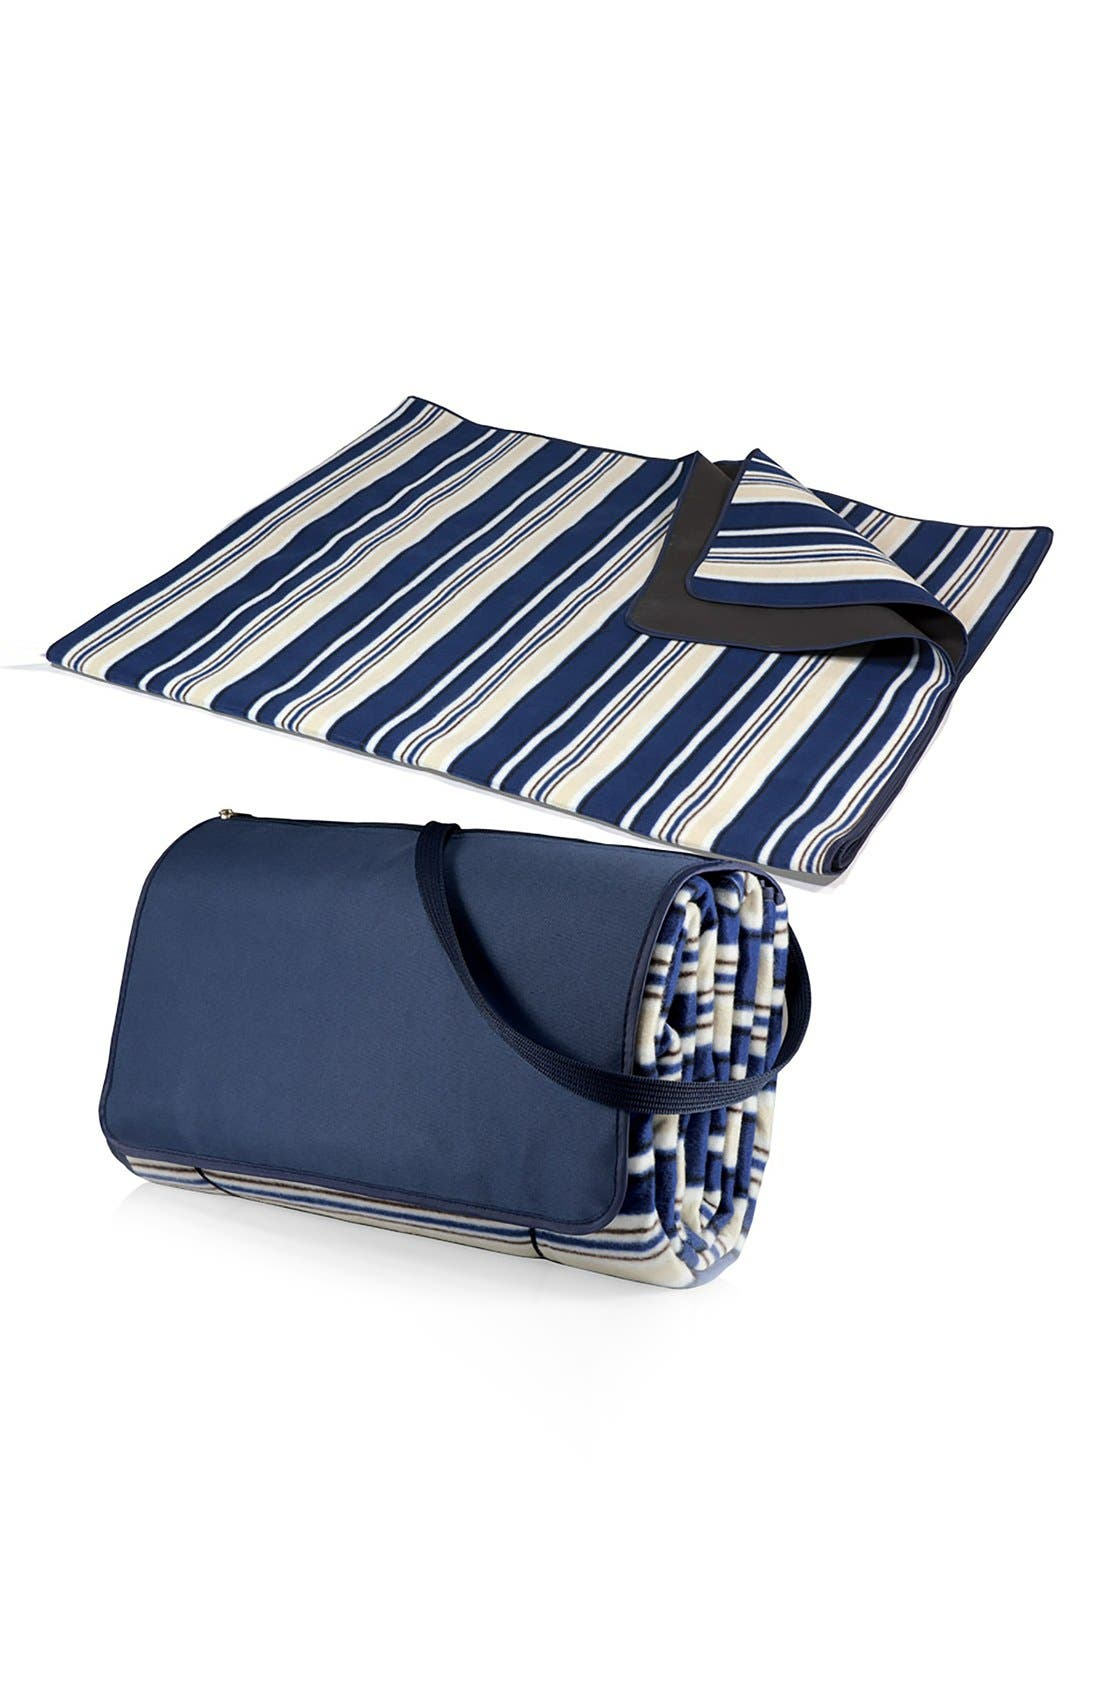 'XL' Blanket Tote,                             Alternate thumbnail 3, color,                             BLUE